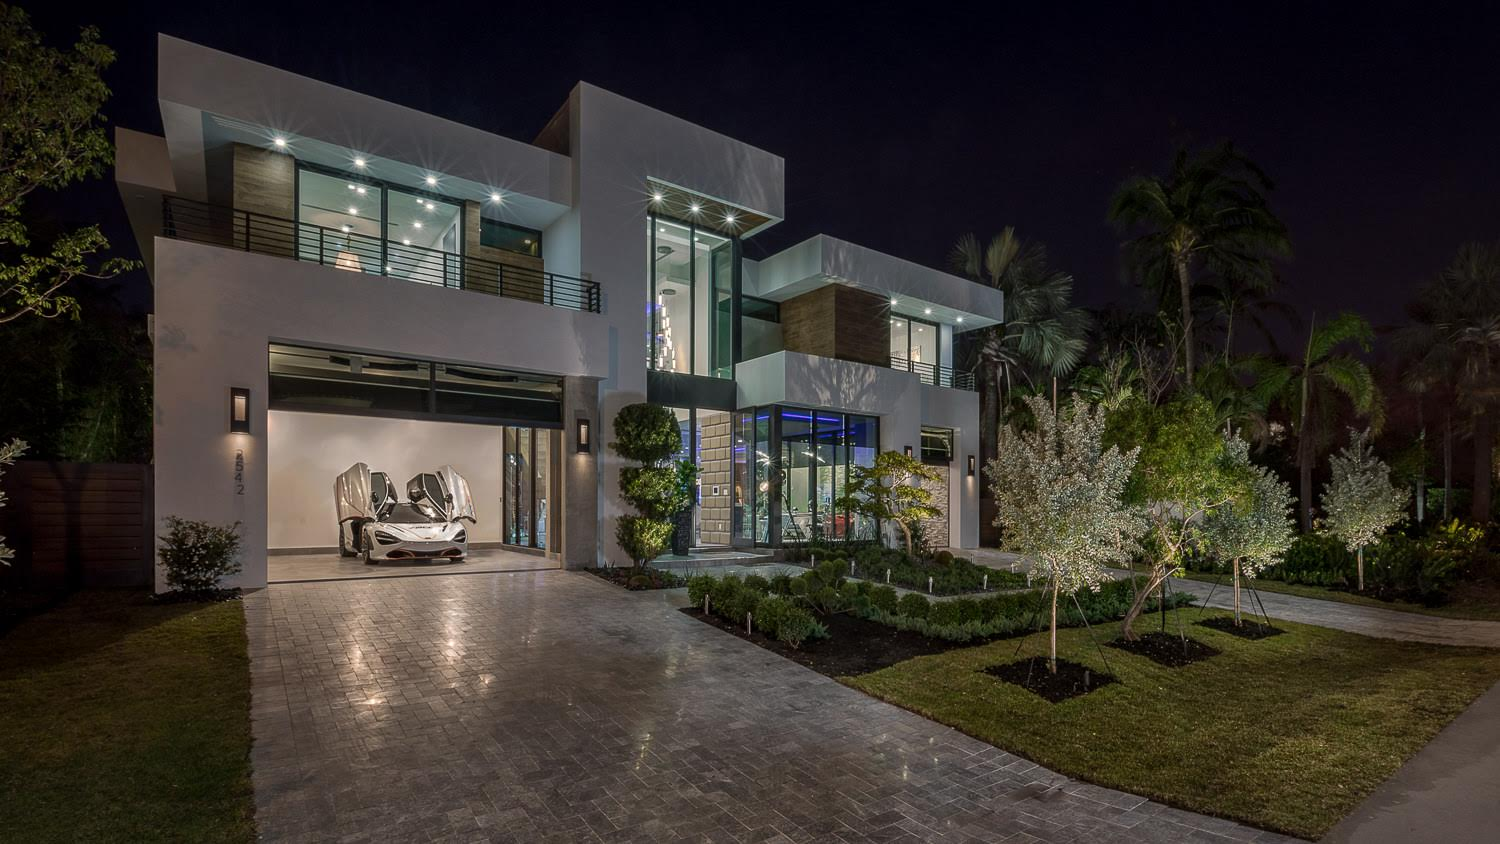 Our latest build.2542 Aquavista Blvd - 7200 sq. ft under air, 9300 sq. ft total. 90' waterfront x 130' deep.5 bedrooms, gym, office, lounge area, huge covered patio, elevator, new seawall and dock.